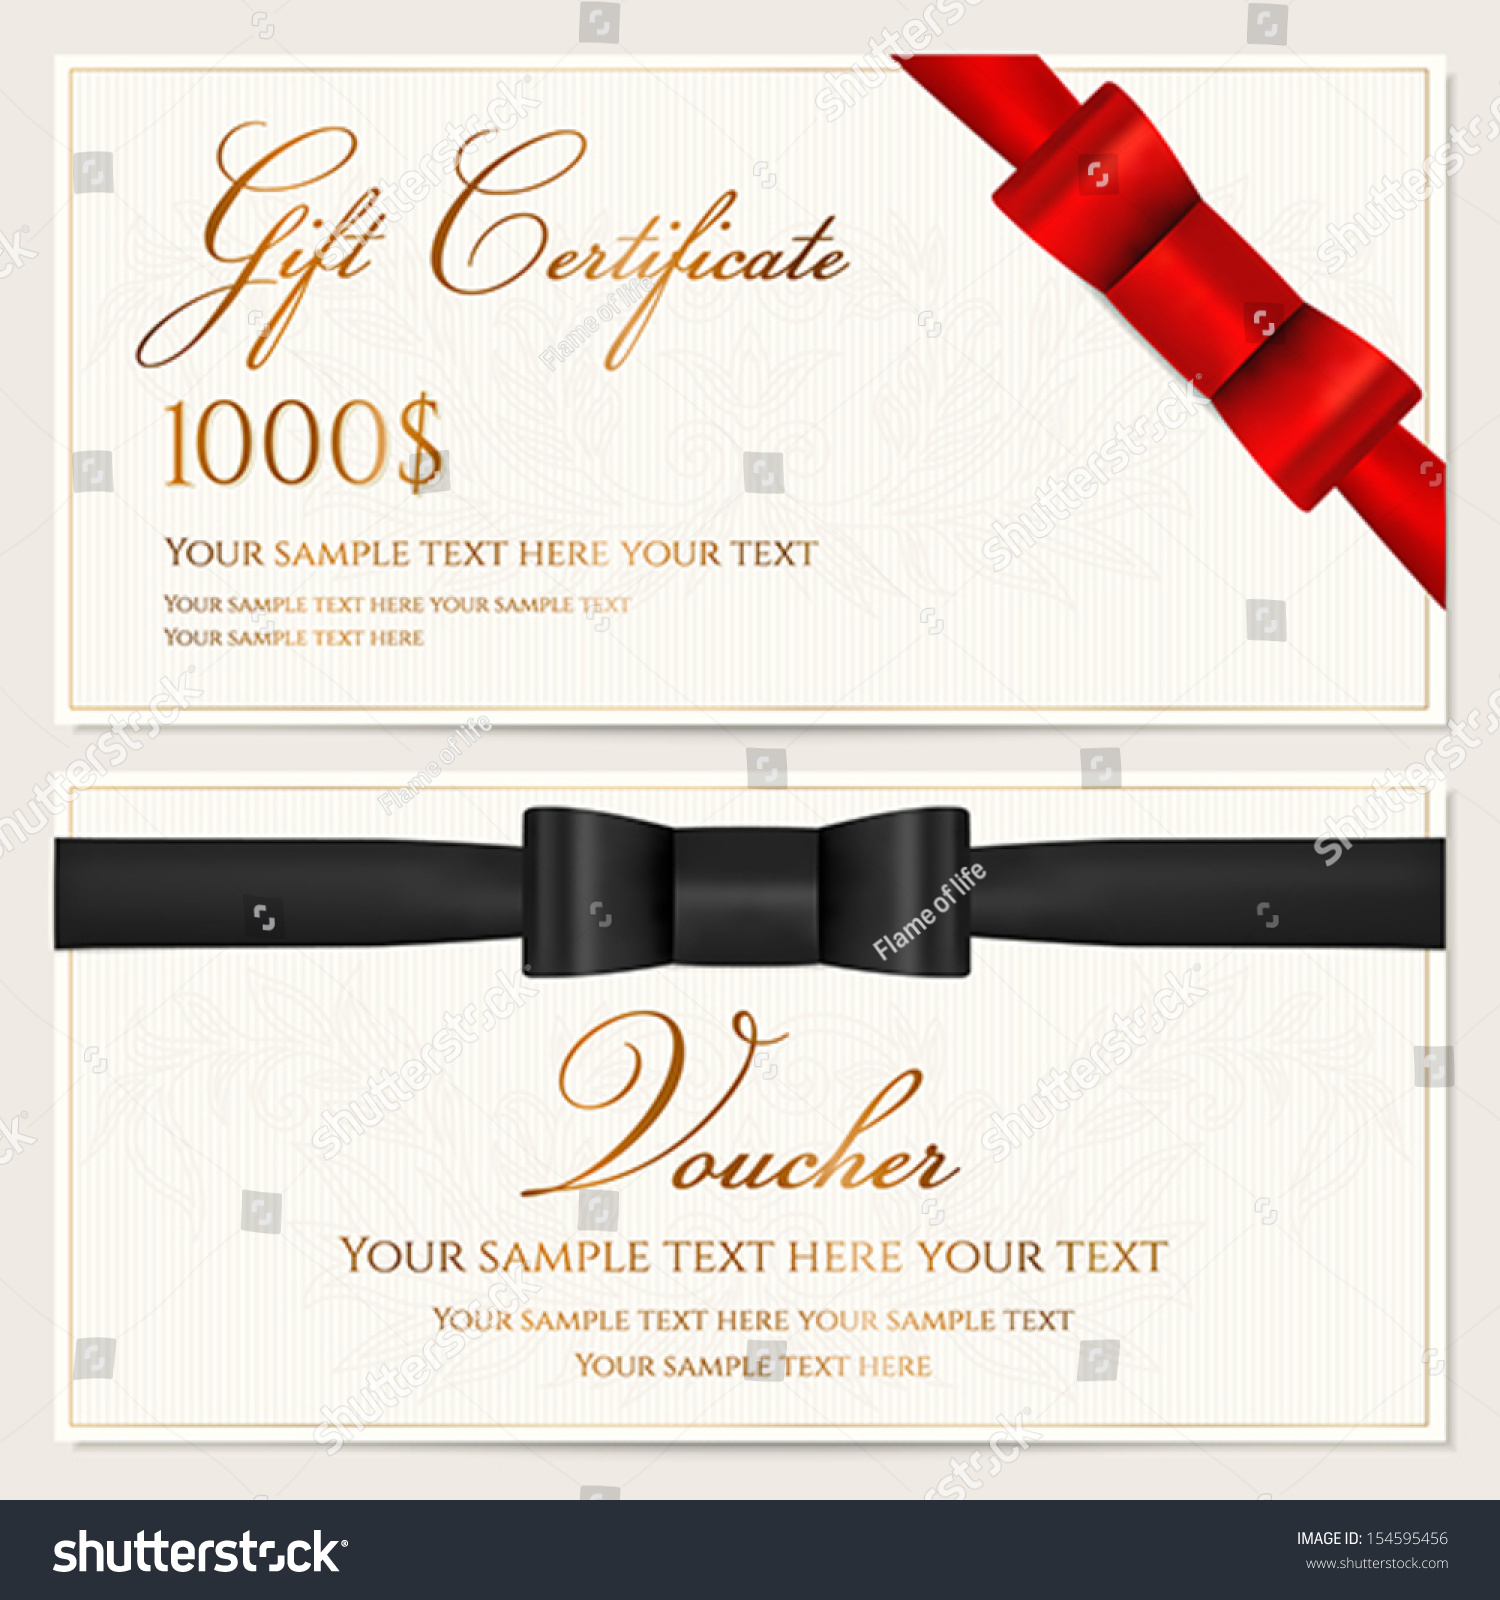 Voucher Gift Certificate Coupon Invitation Gift Vector – Sample Check Voucher